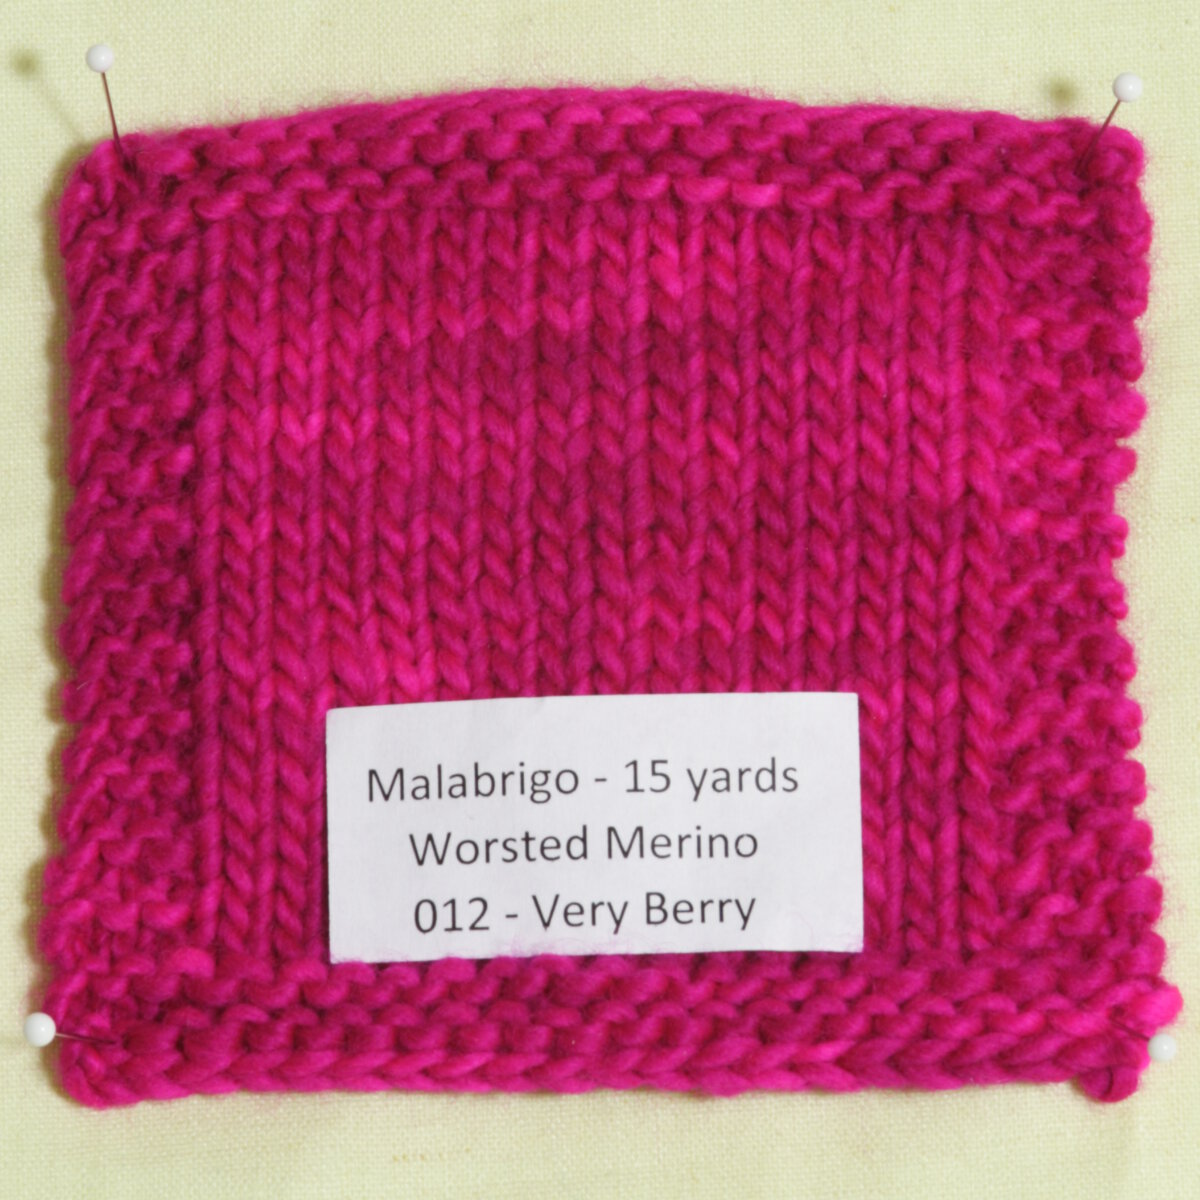 Knitting Patterns For Worsted Wool : Malabrigo Worsted Merino Yarn - 012 - Very Berry at Jimmy Beans Wool